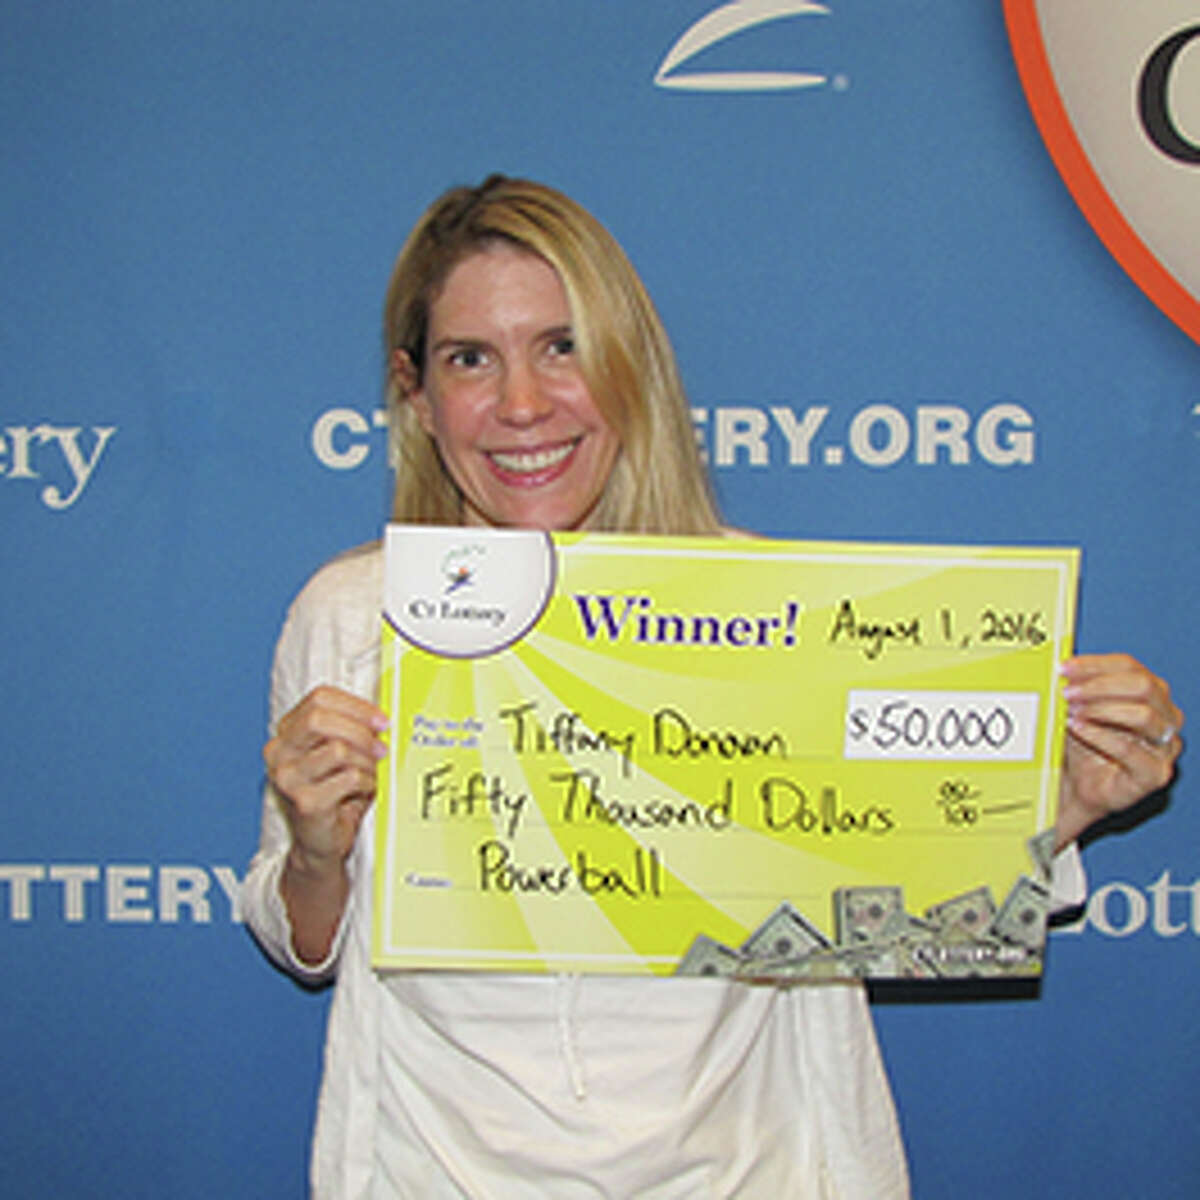 Coincidence is one way to describe Tiffany Donovan's $50,000 win on Powerball drawn on July 27, 2016. Donovan of Weston, had been celebrating her 16th anniversary when her friend suggested to play Powerball. Following the advice, Donovan decided to buy